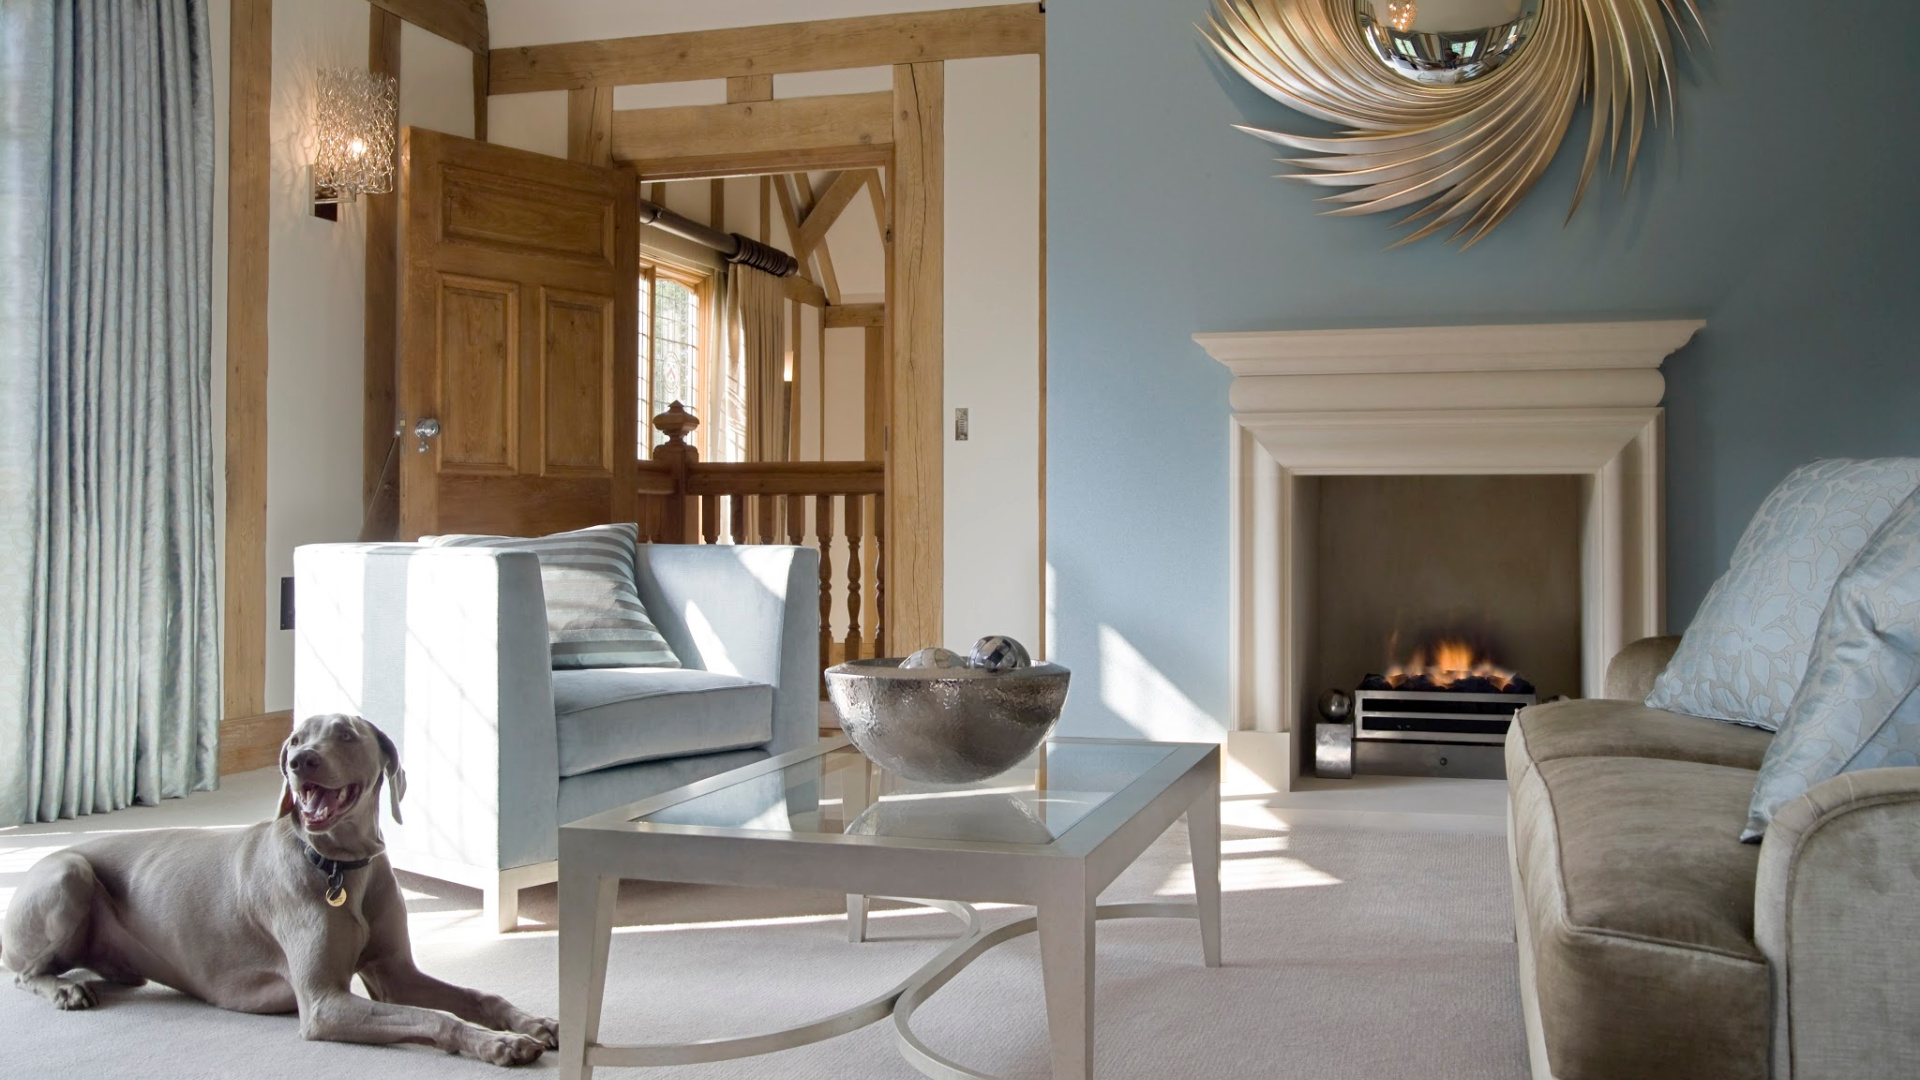 Q&A With Jenny Weiss and Helen Bygraves - Hill House Interiors - Humphrey Munson Blog